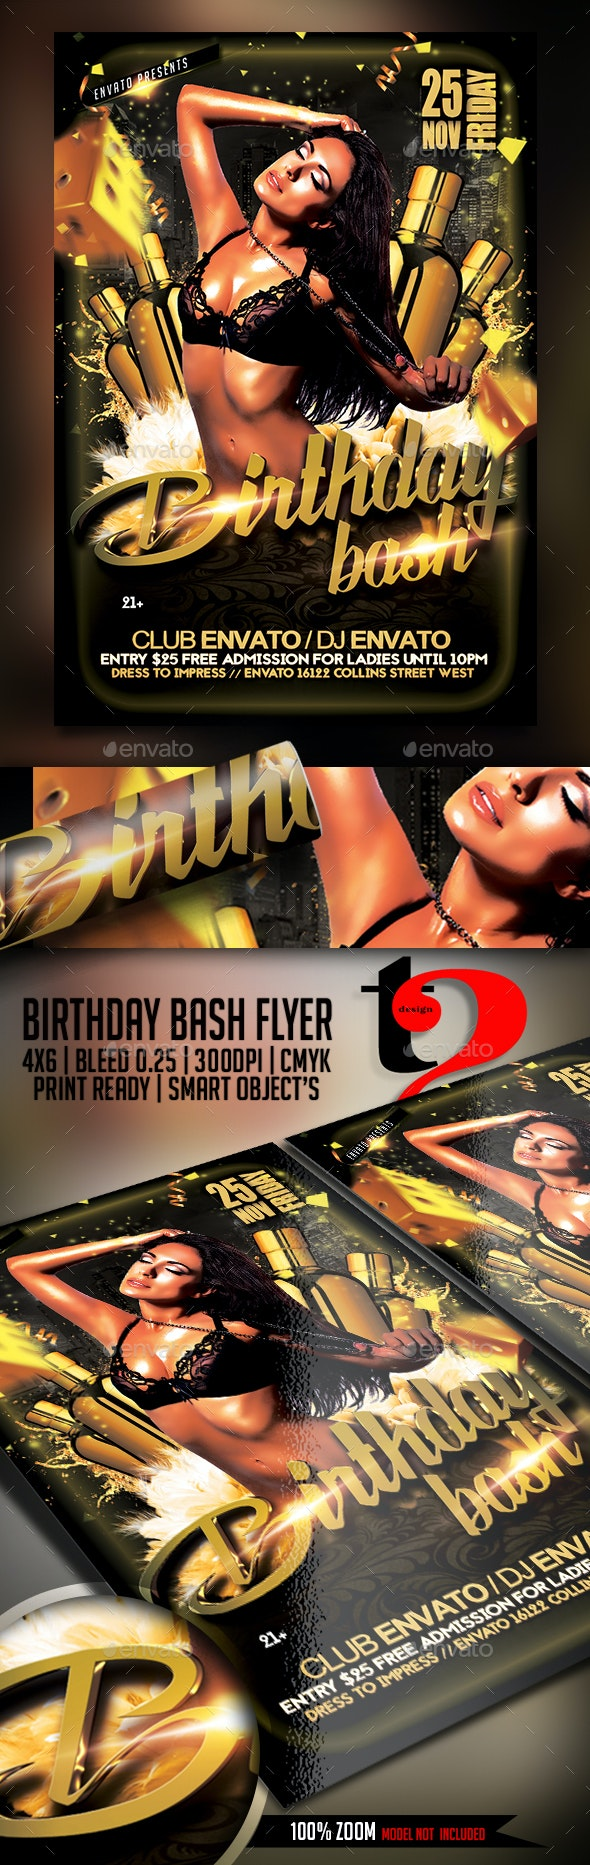 Birthday Bash Flyer - Template - Clubs & Parties Events